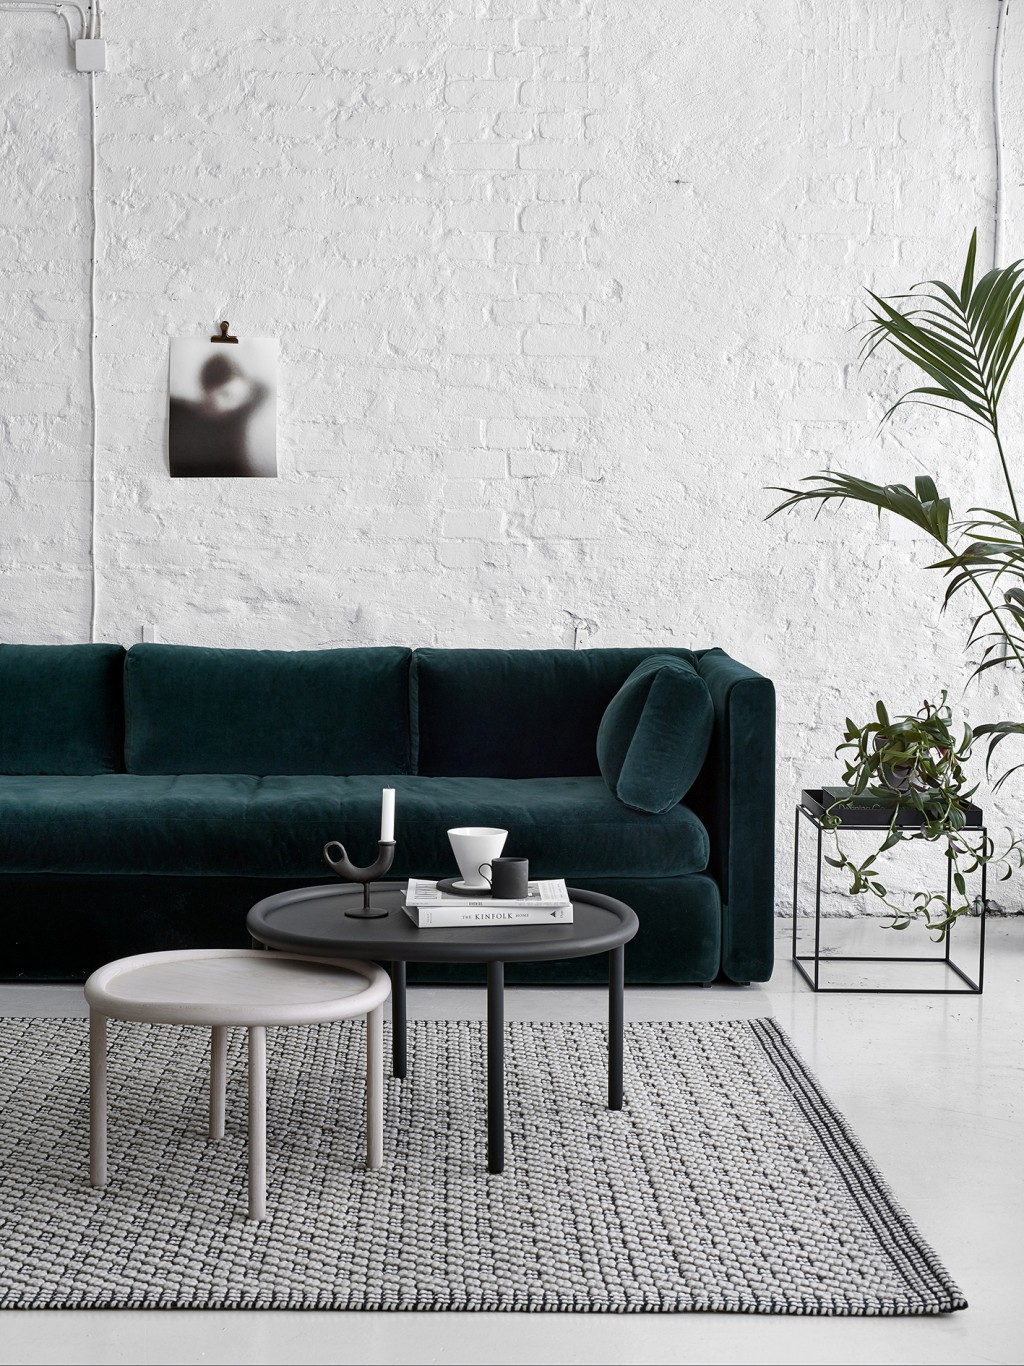 Dark green velvet sofa against white brick wall